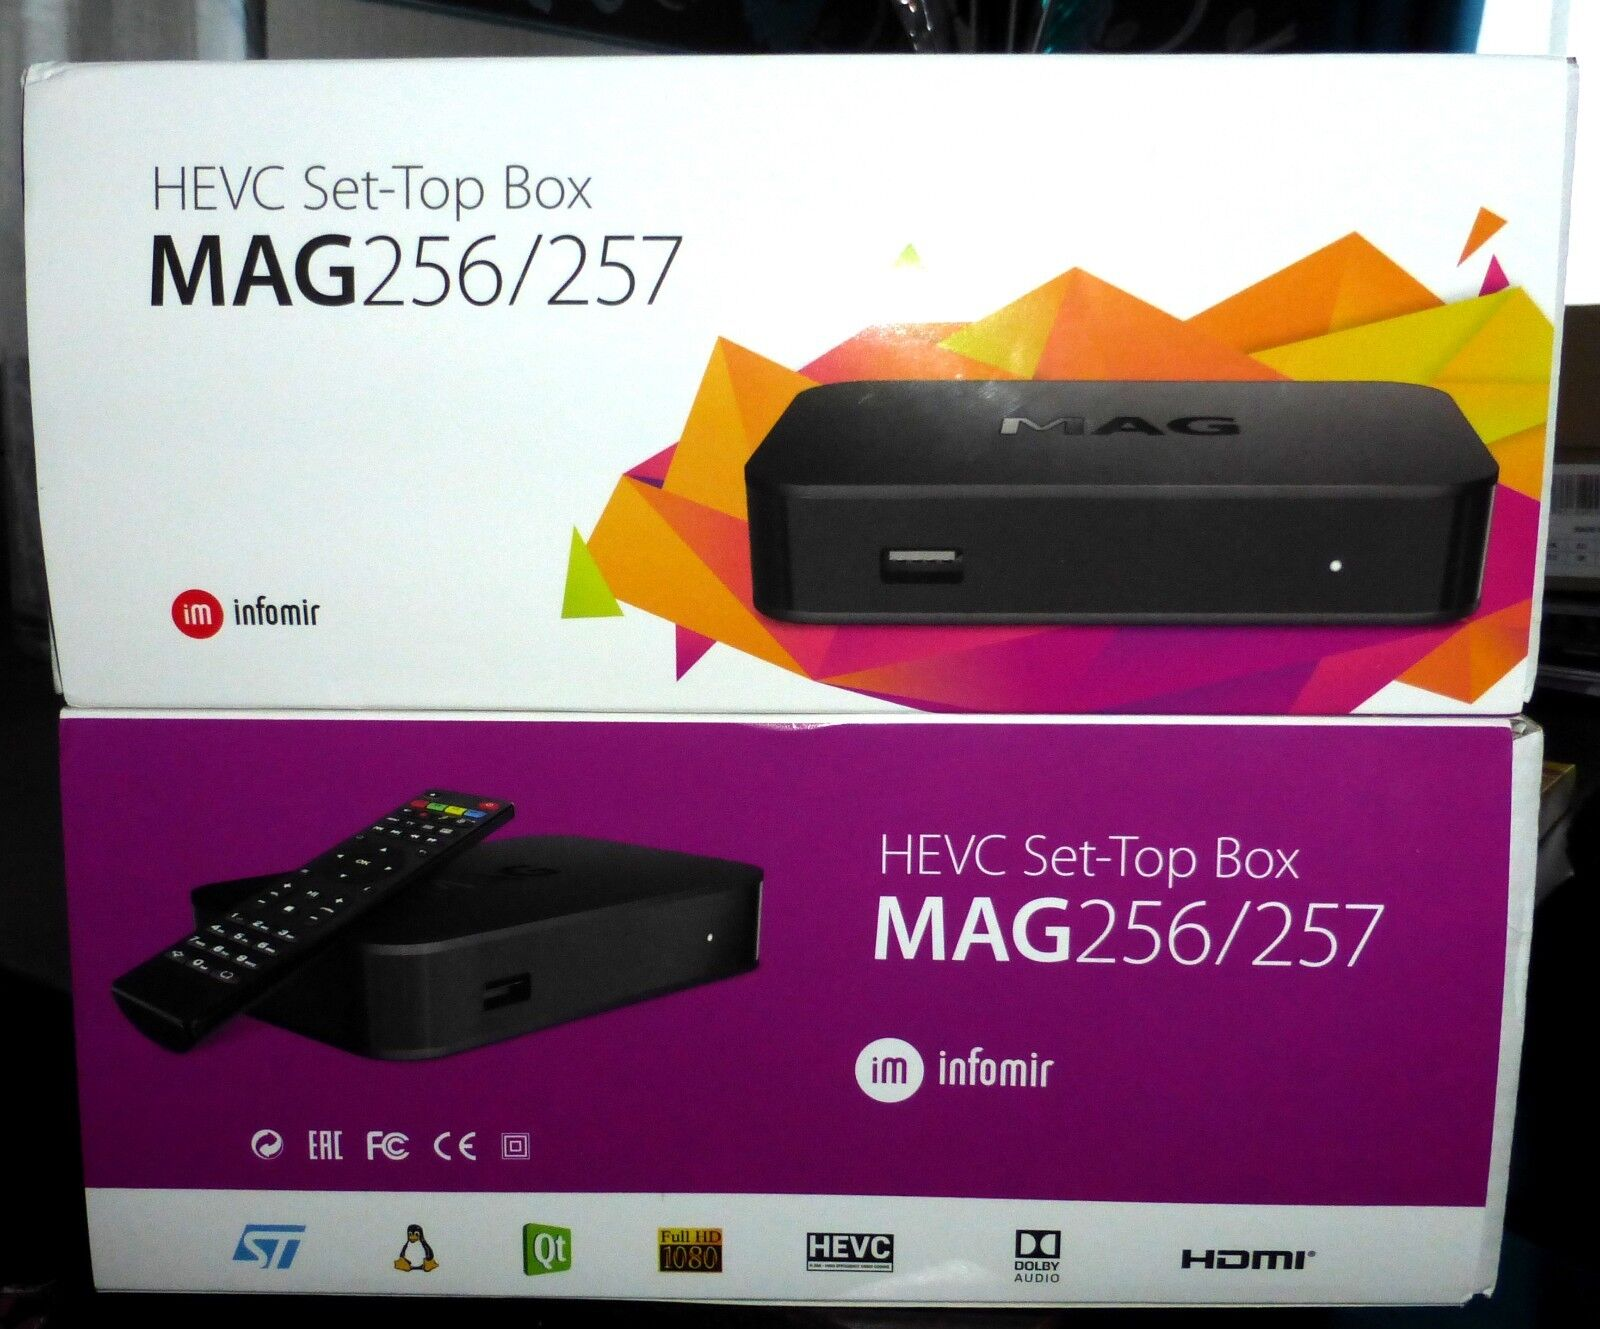 *MAG256/257 genuine IPTV Box with UK plug and12 month Premium IPTV subscription.